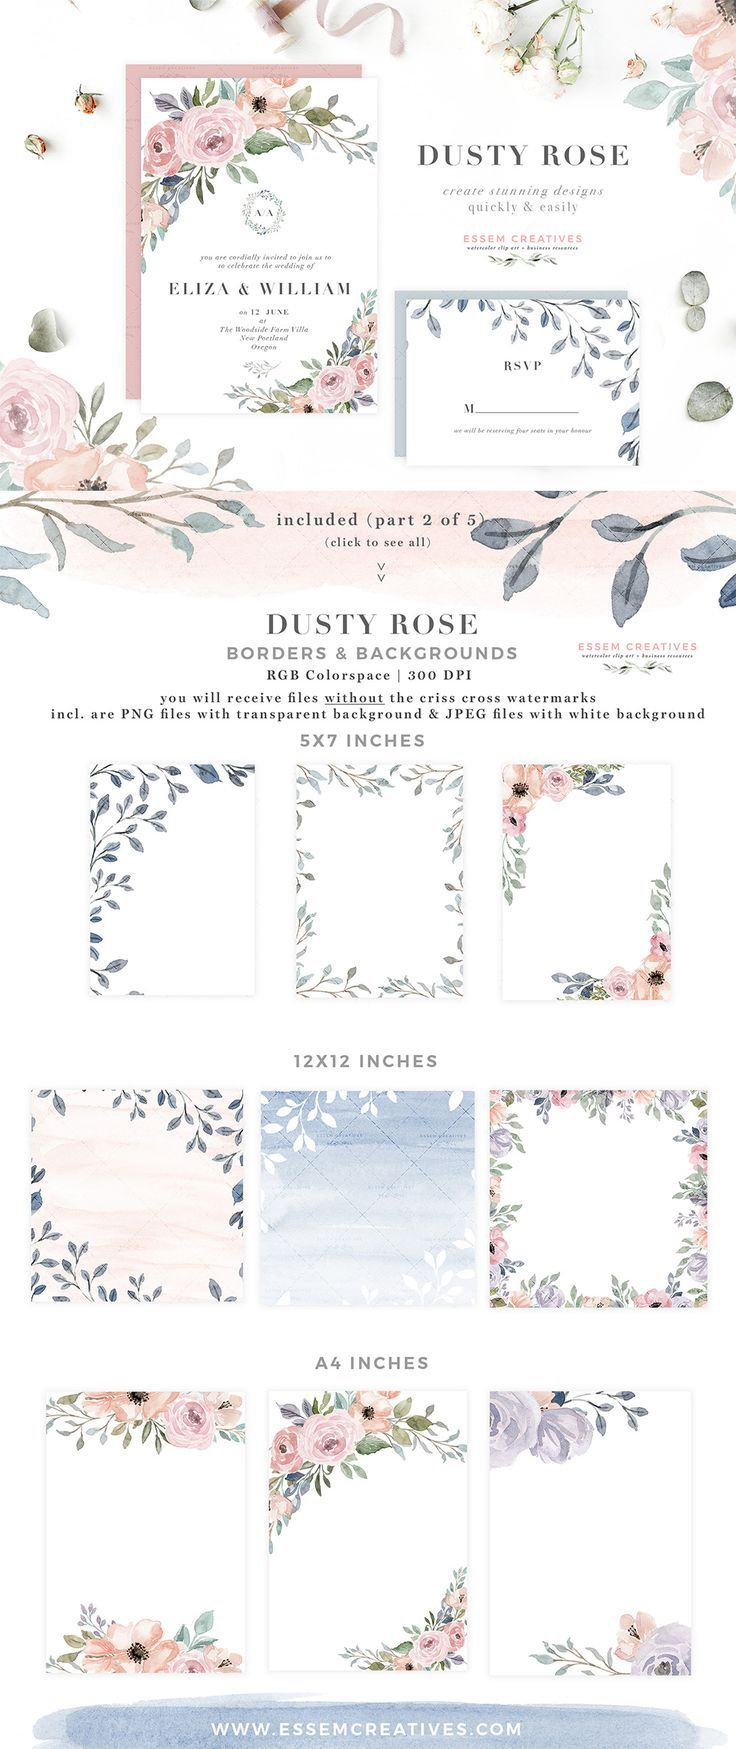 Dusty Rose Watercolor Floral Card Borders Backgrounds Png Jpeg Floral Wedding Invitations Vintage Floral Wedding Invitations Blue Wedding Invitations